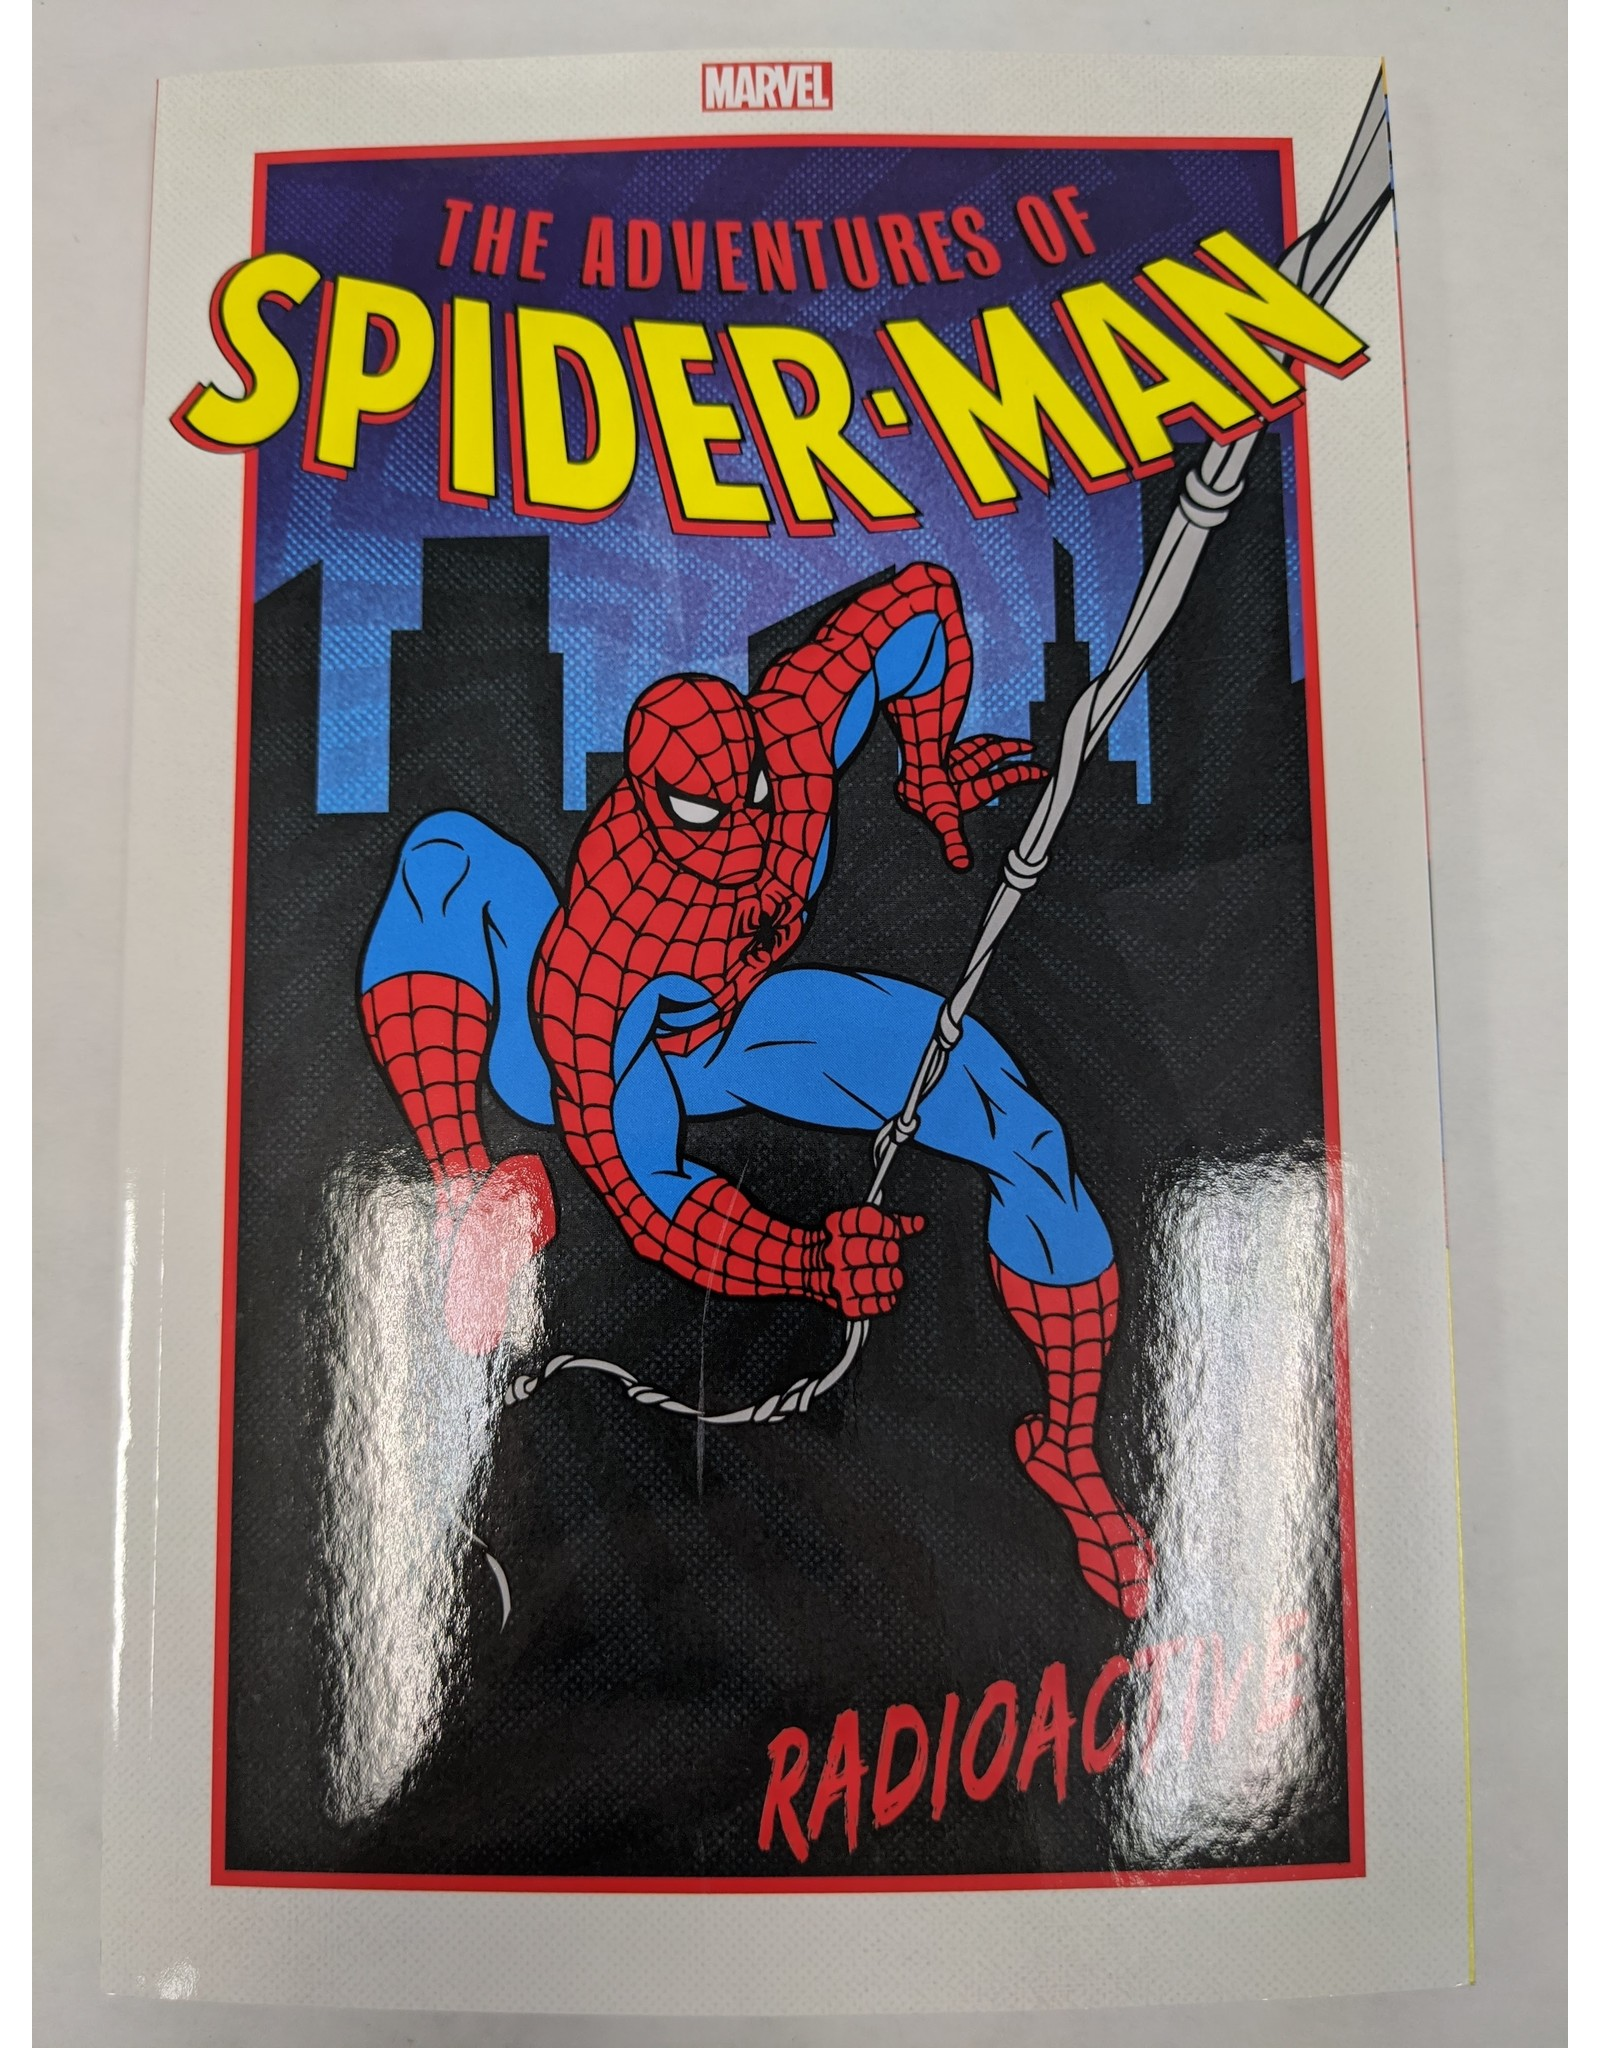 MARVEL COMICS ADVENTURES OF SPIDER-MAN GN TP RADIOACTIVE